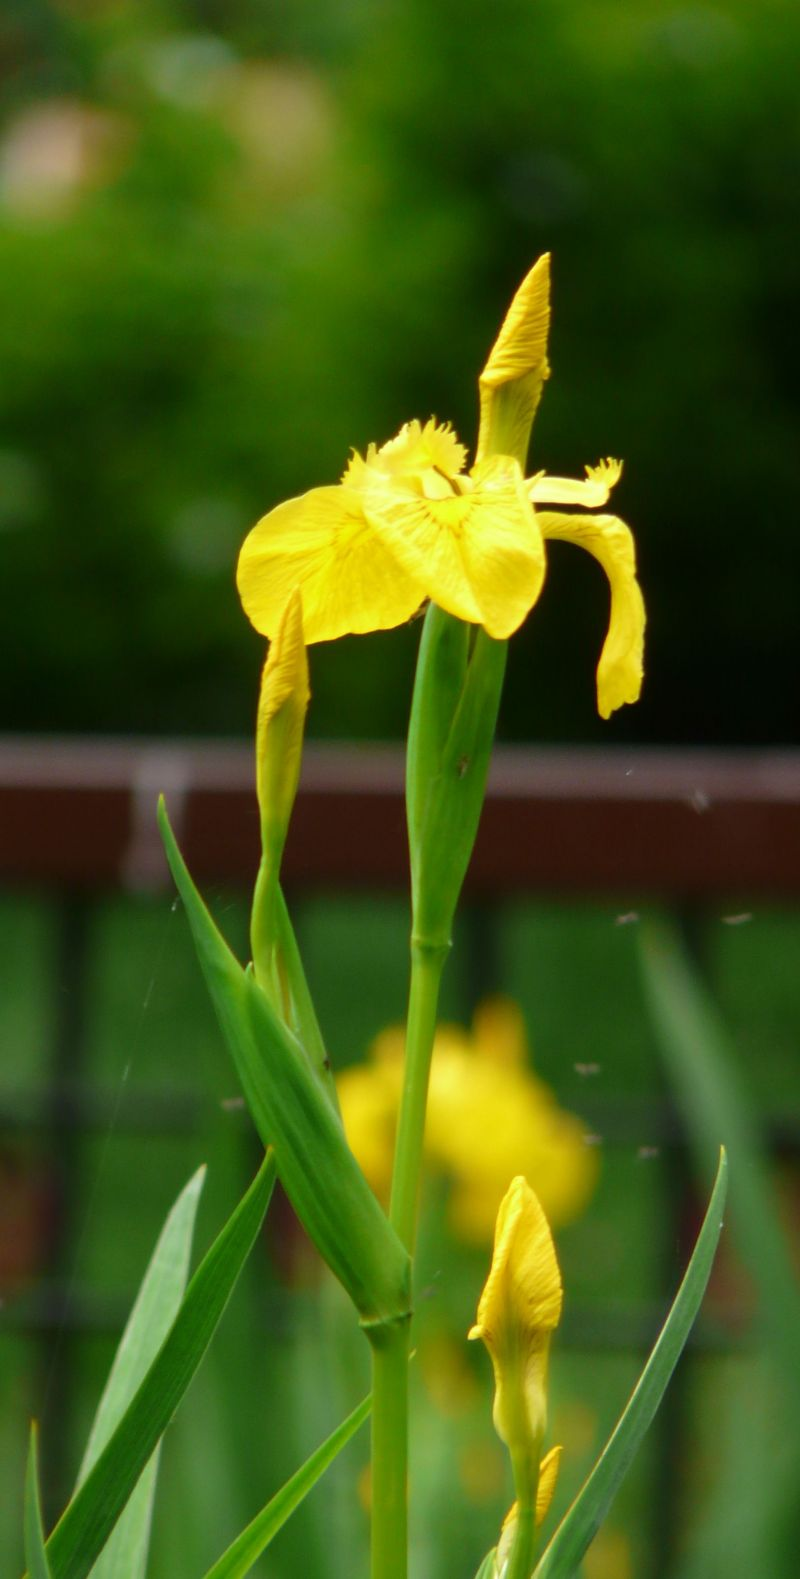 Yellow Reed Flower Image